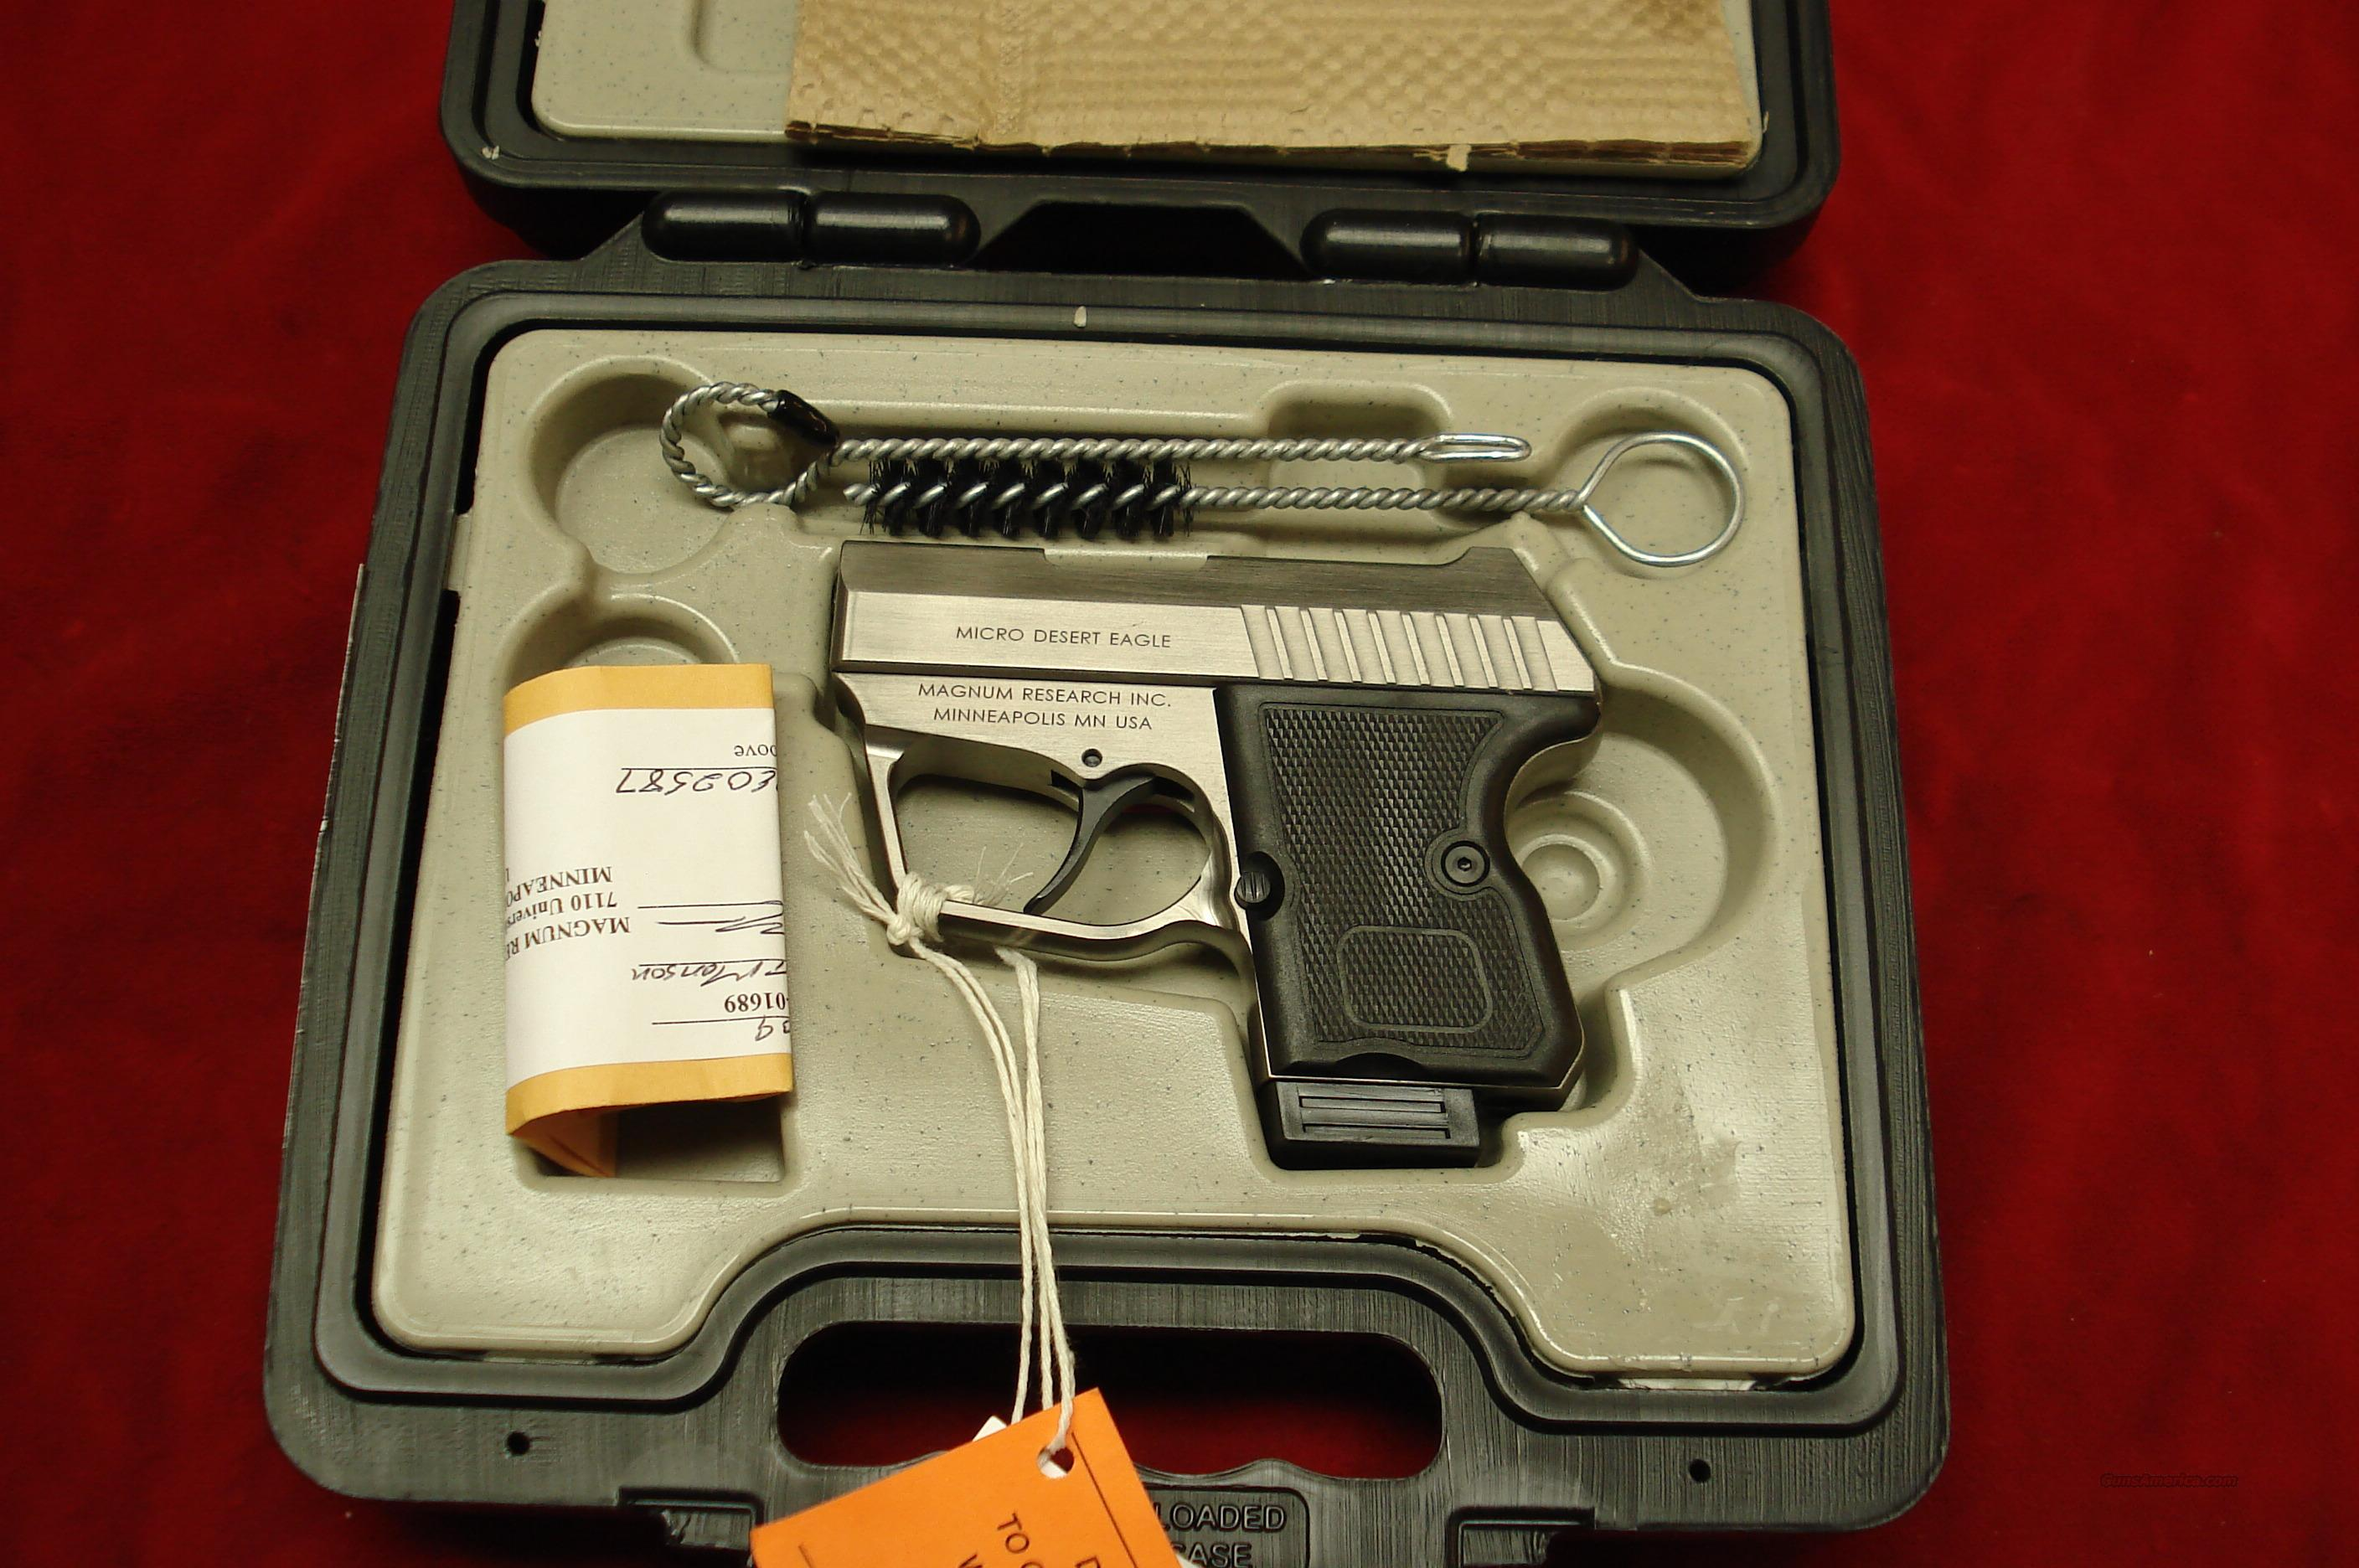 MAGNUM RESEARCH MICRO DESEART EAGLE  380CAL. NEW  Guns > Pistols > Magnum Research Pistols